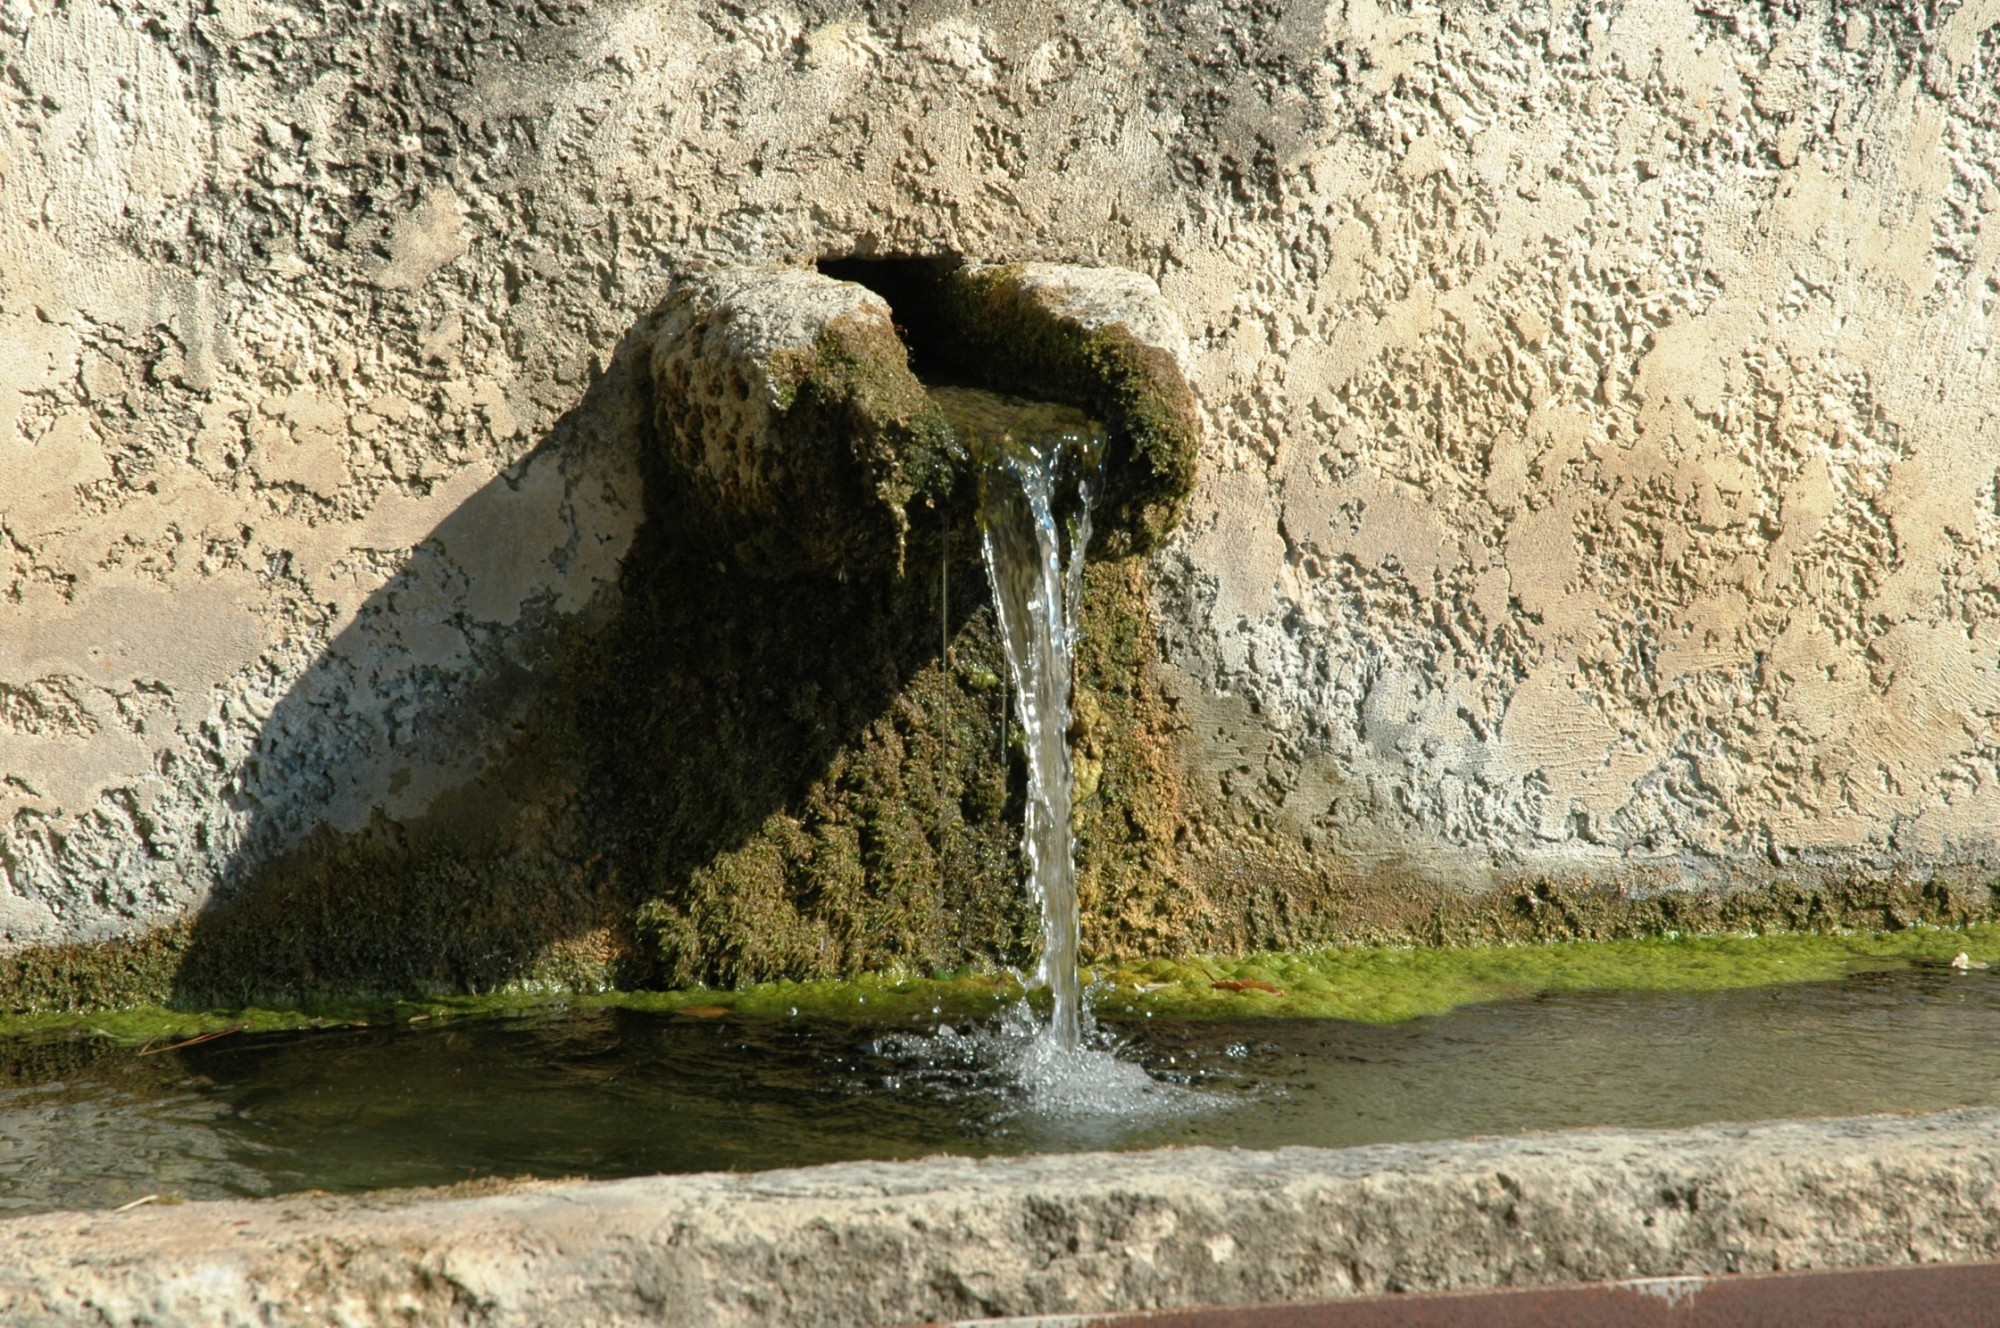 Some fountains are rustic, discreet, beautiful in their simplicity